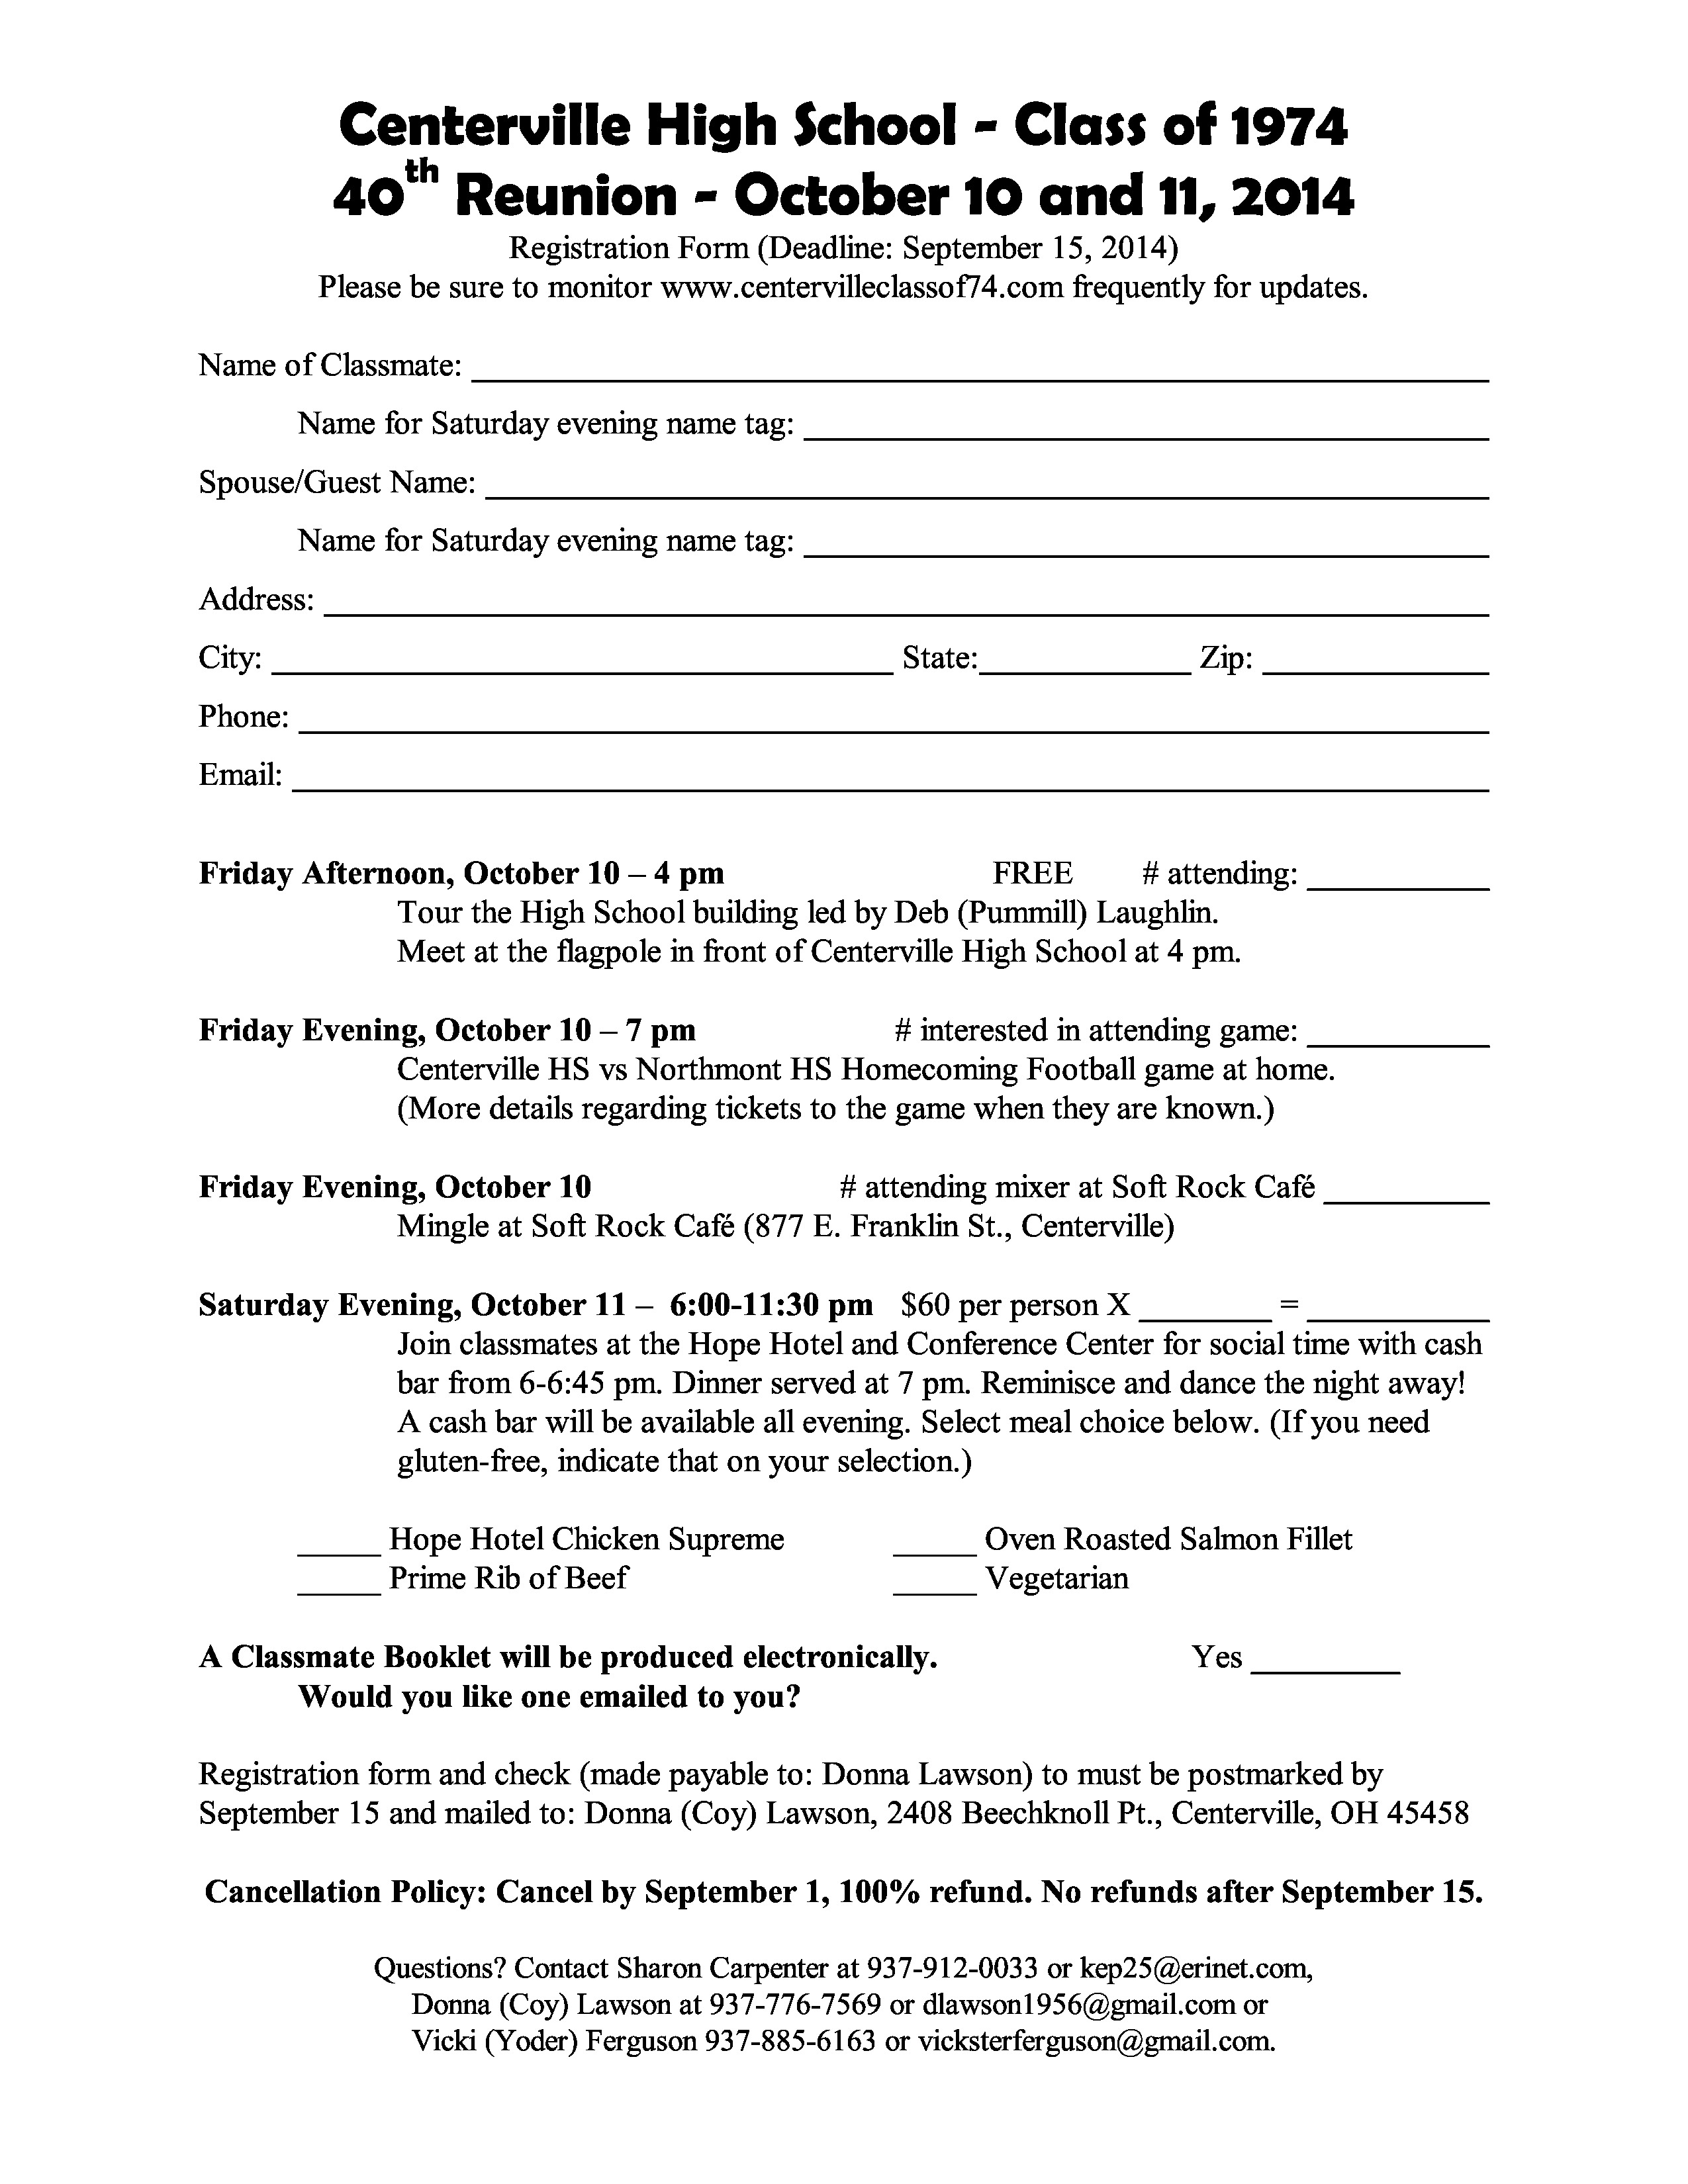 high school registration form template - registration form centerville high school class of 1974